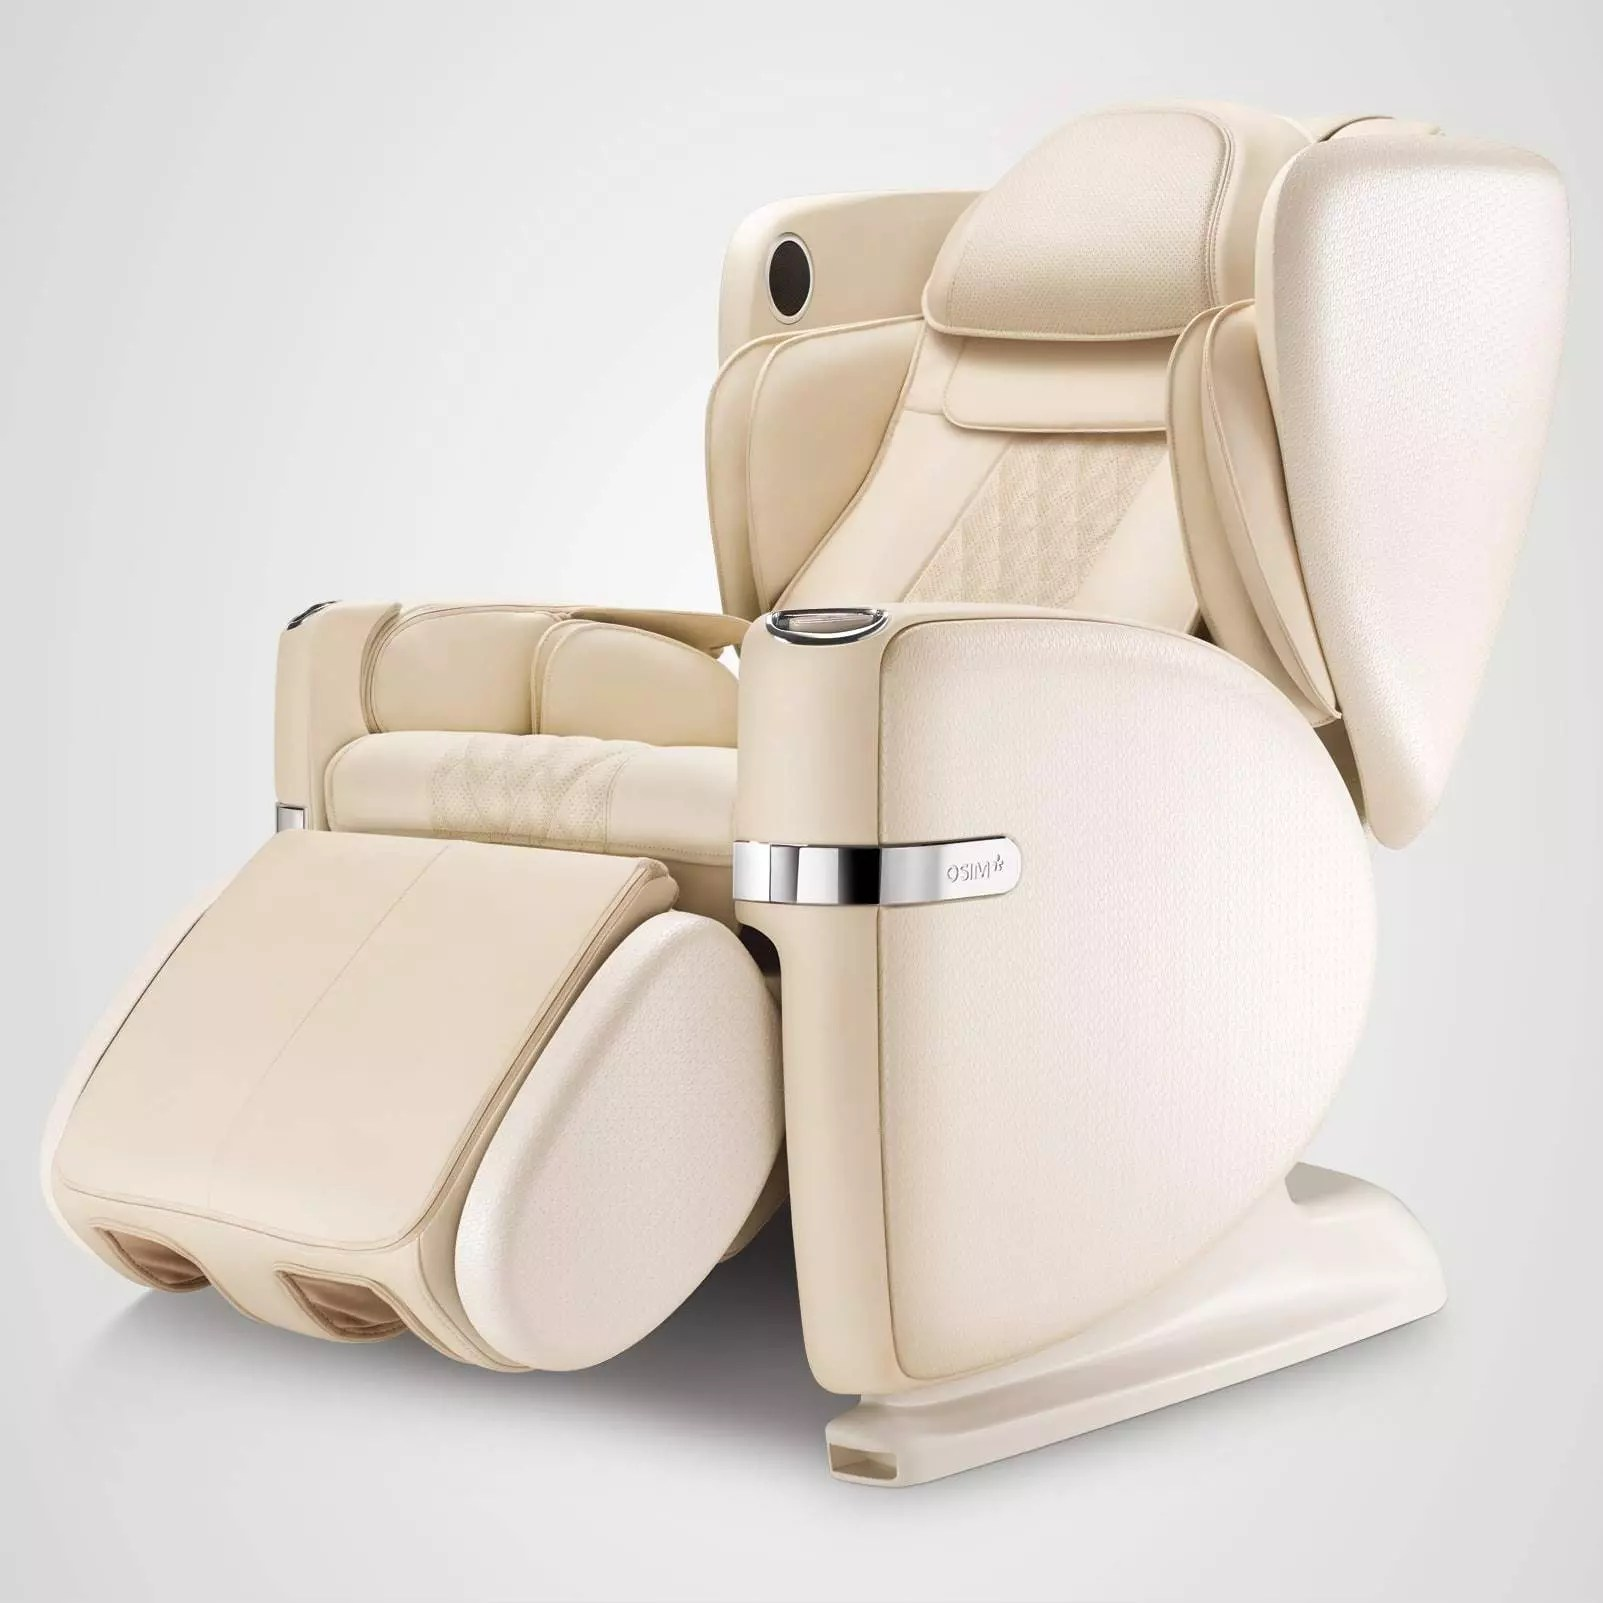 massage chair store full covers osim ulove heated body shop